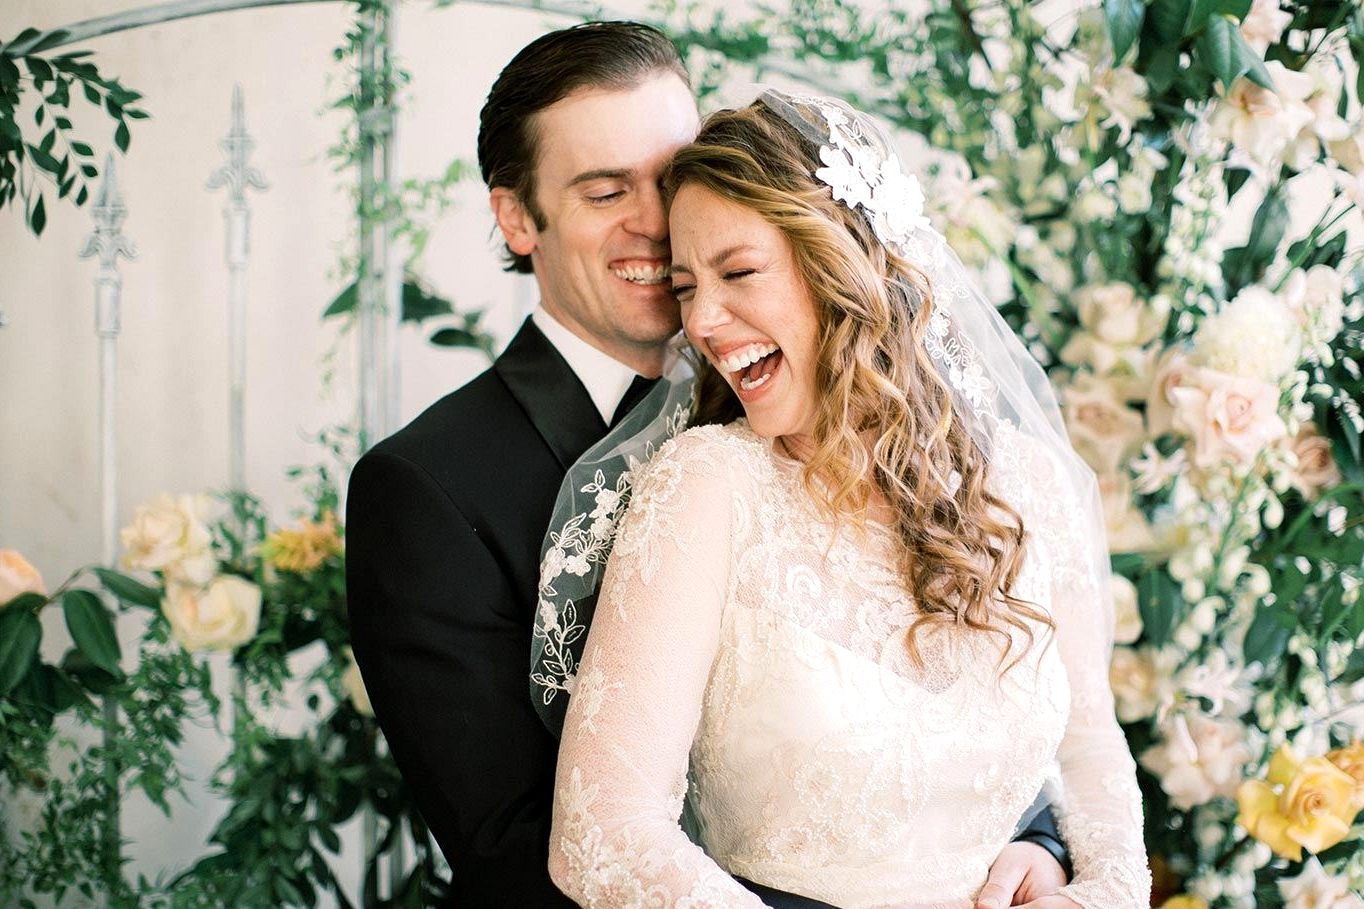 vintage inspired wedding dress with embroidered lace and pearl embellishments with a vintage lace bridal veil and a black groom tux